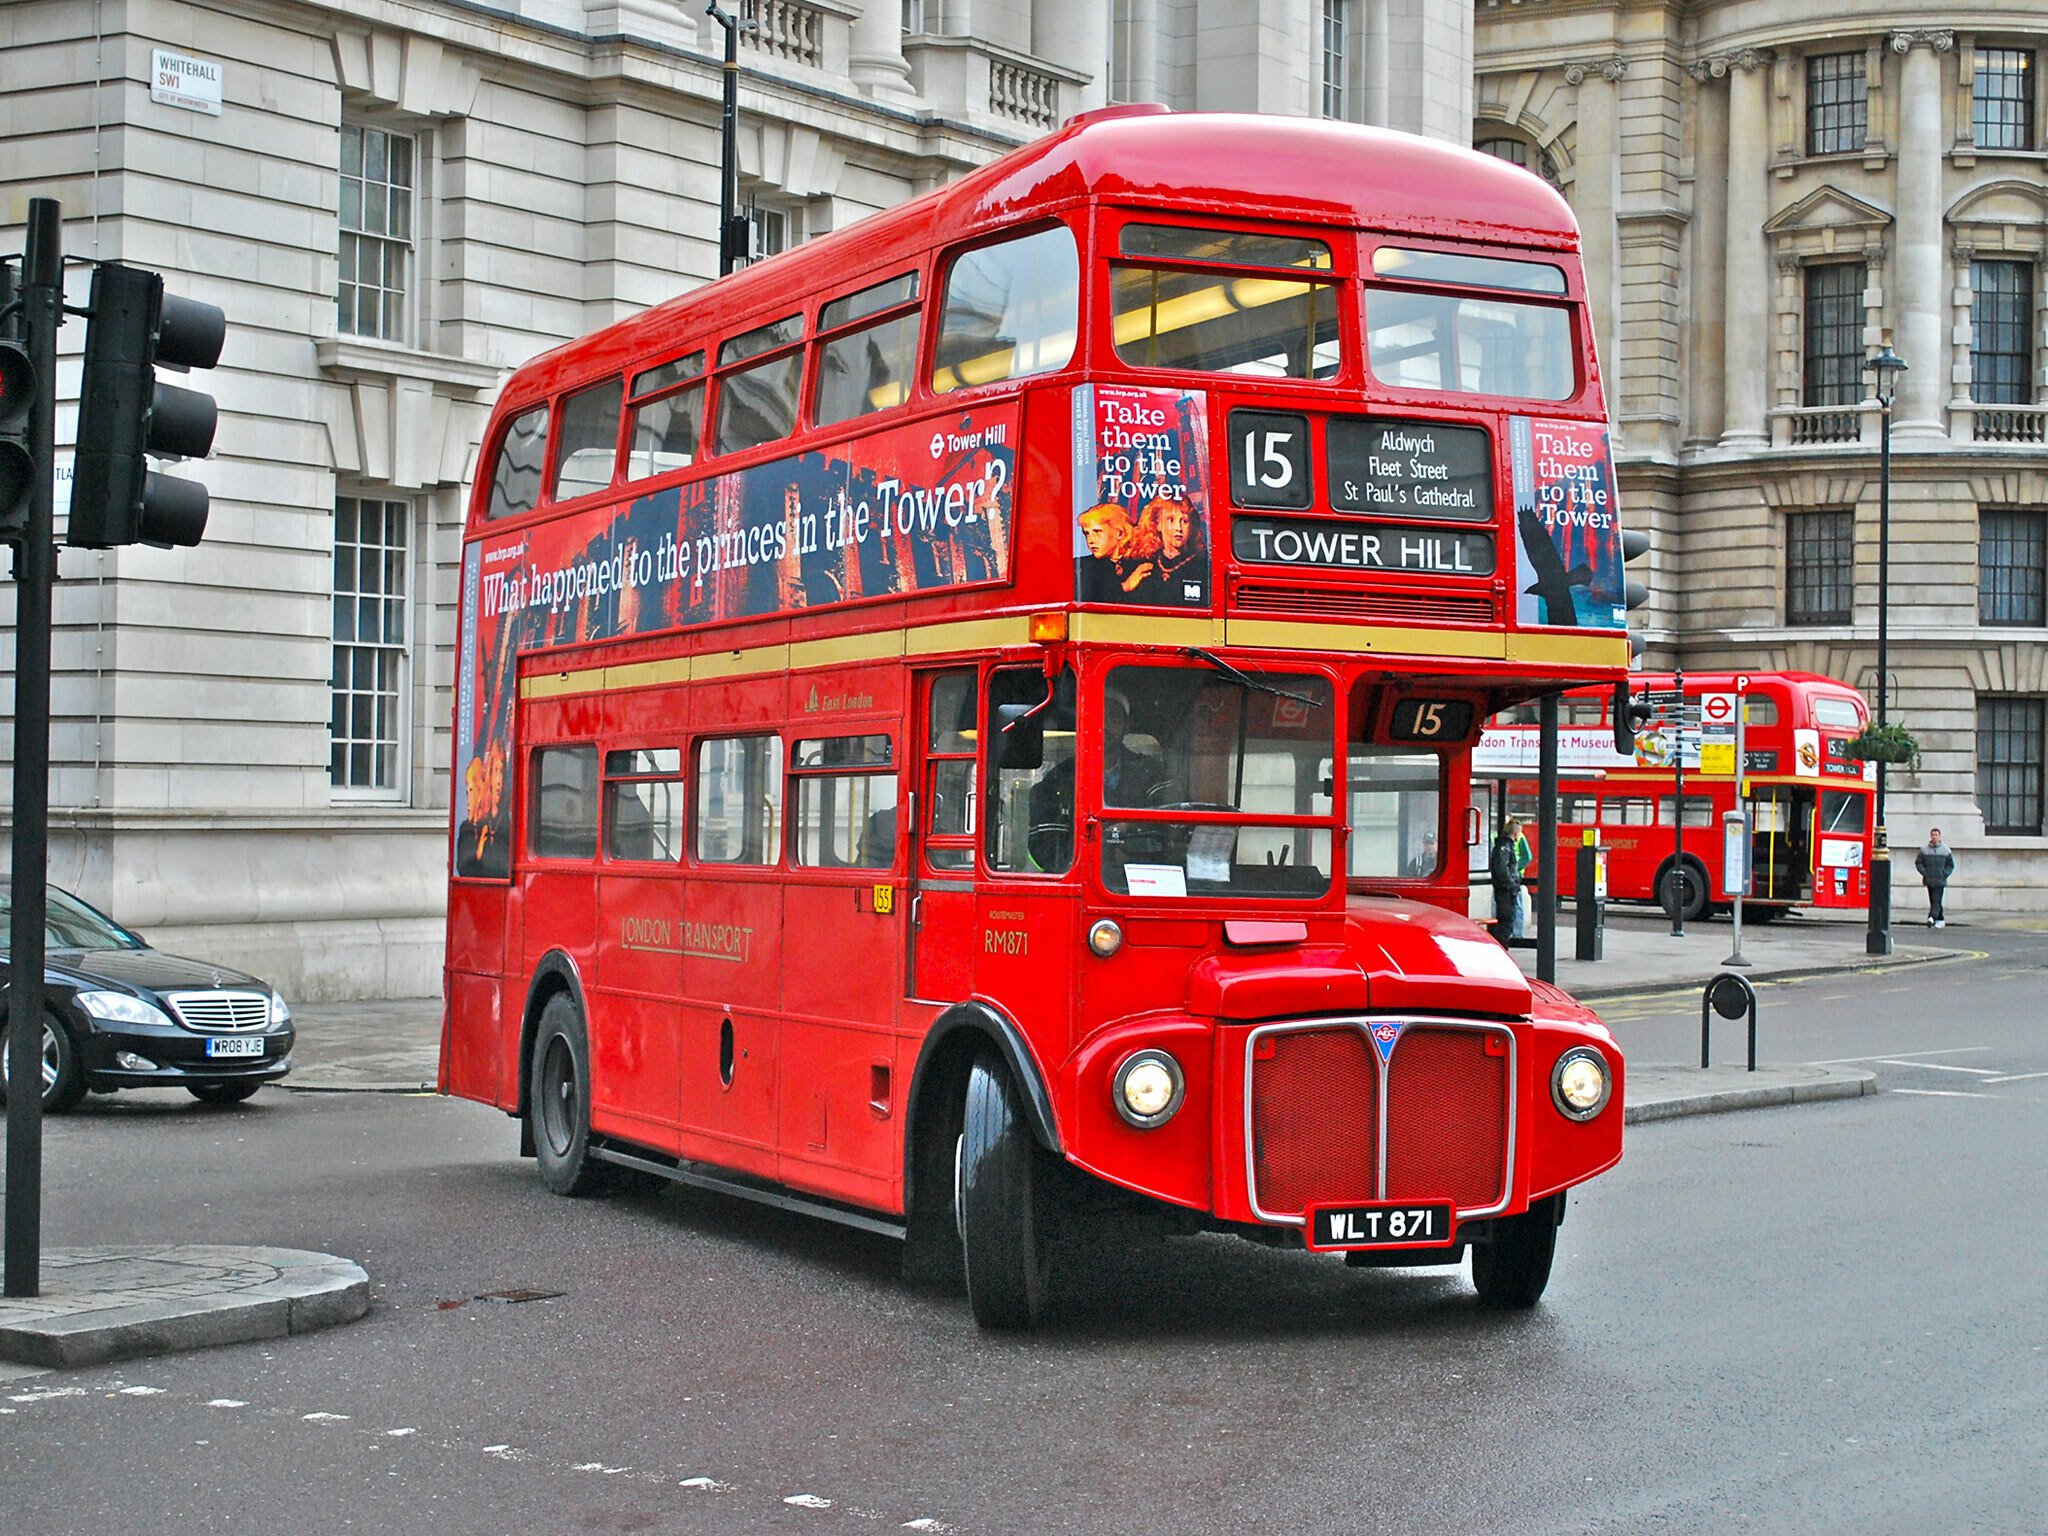 Most Googled: why are London buses red?